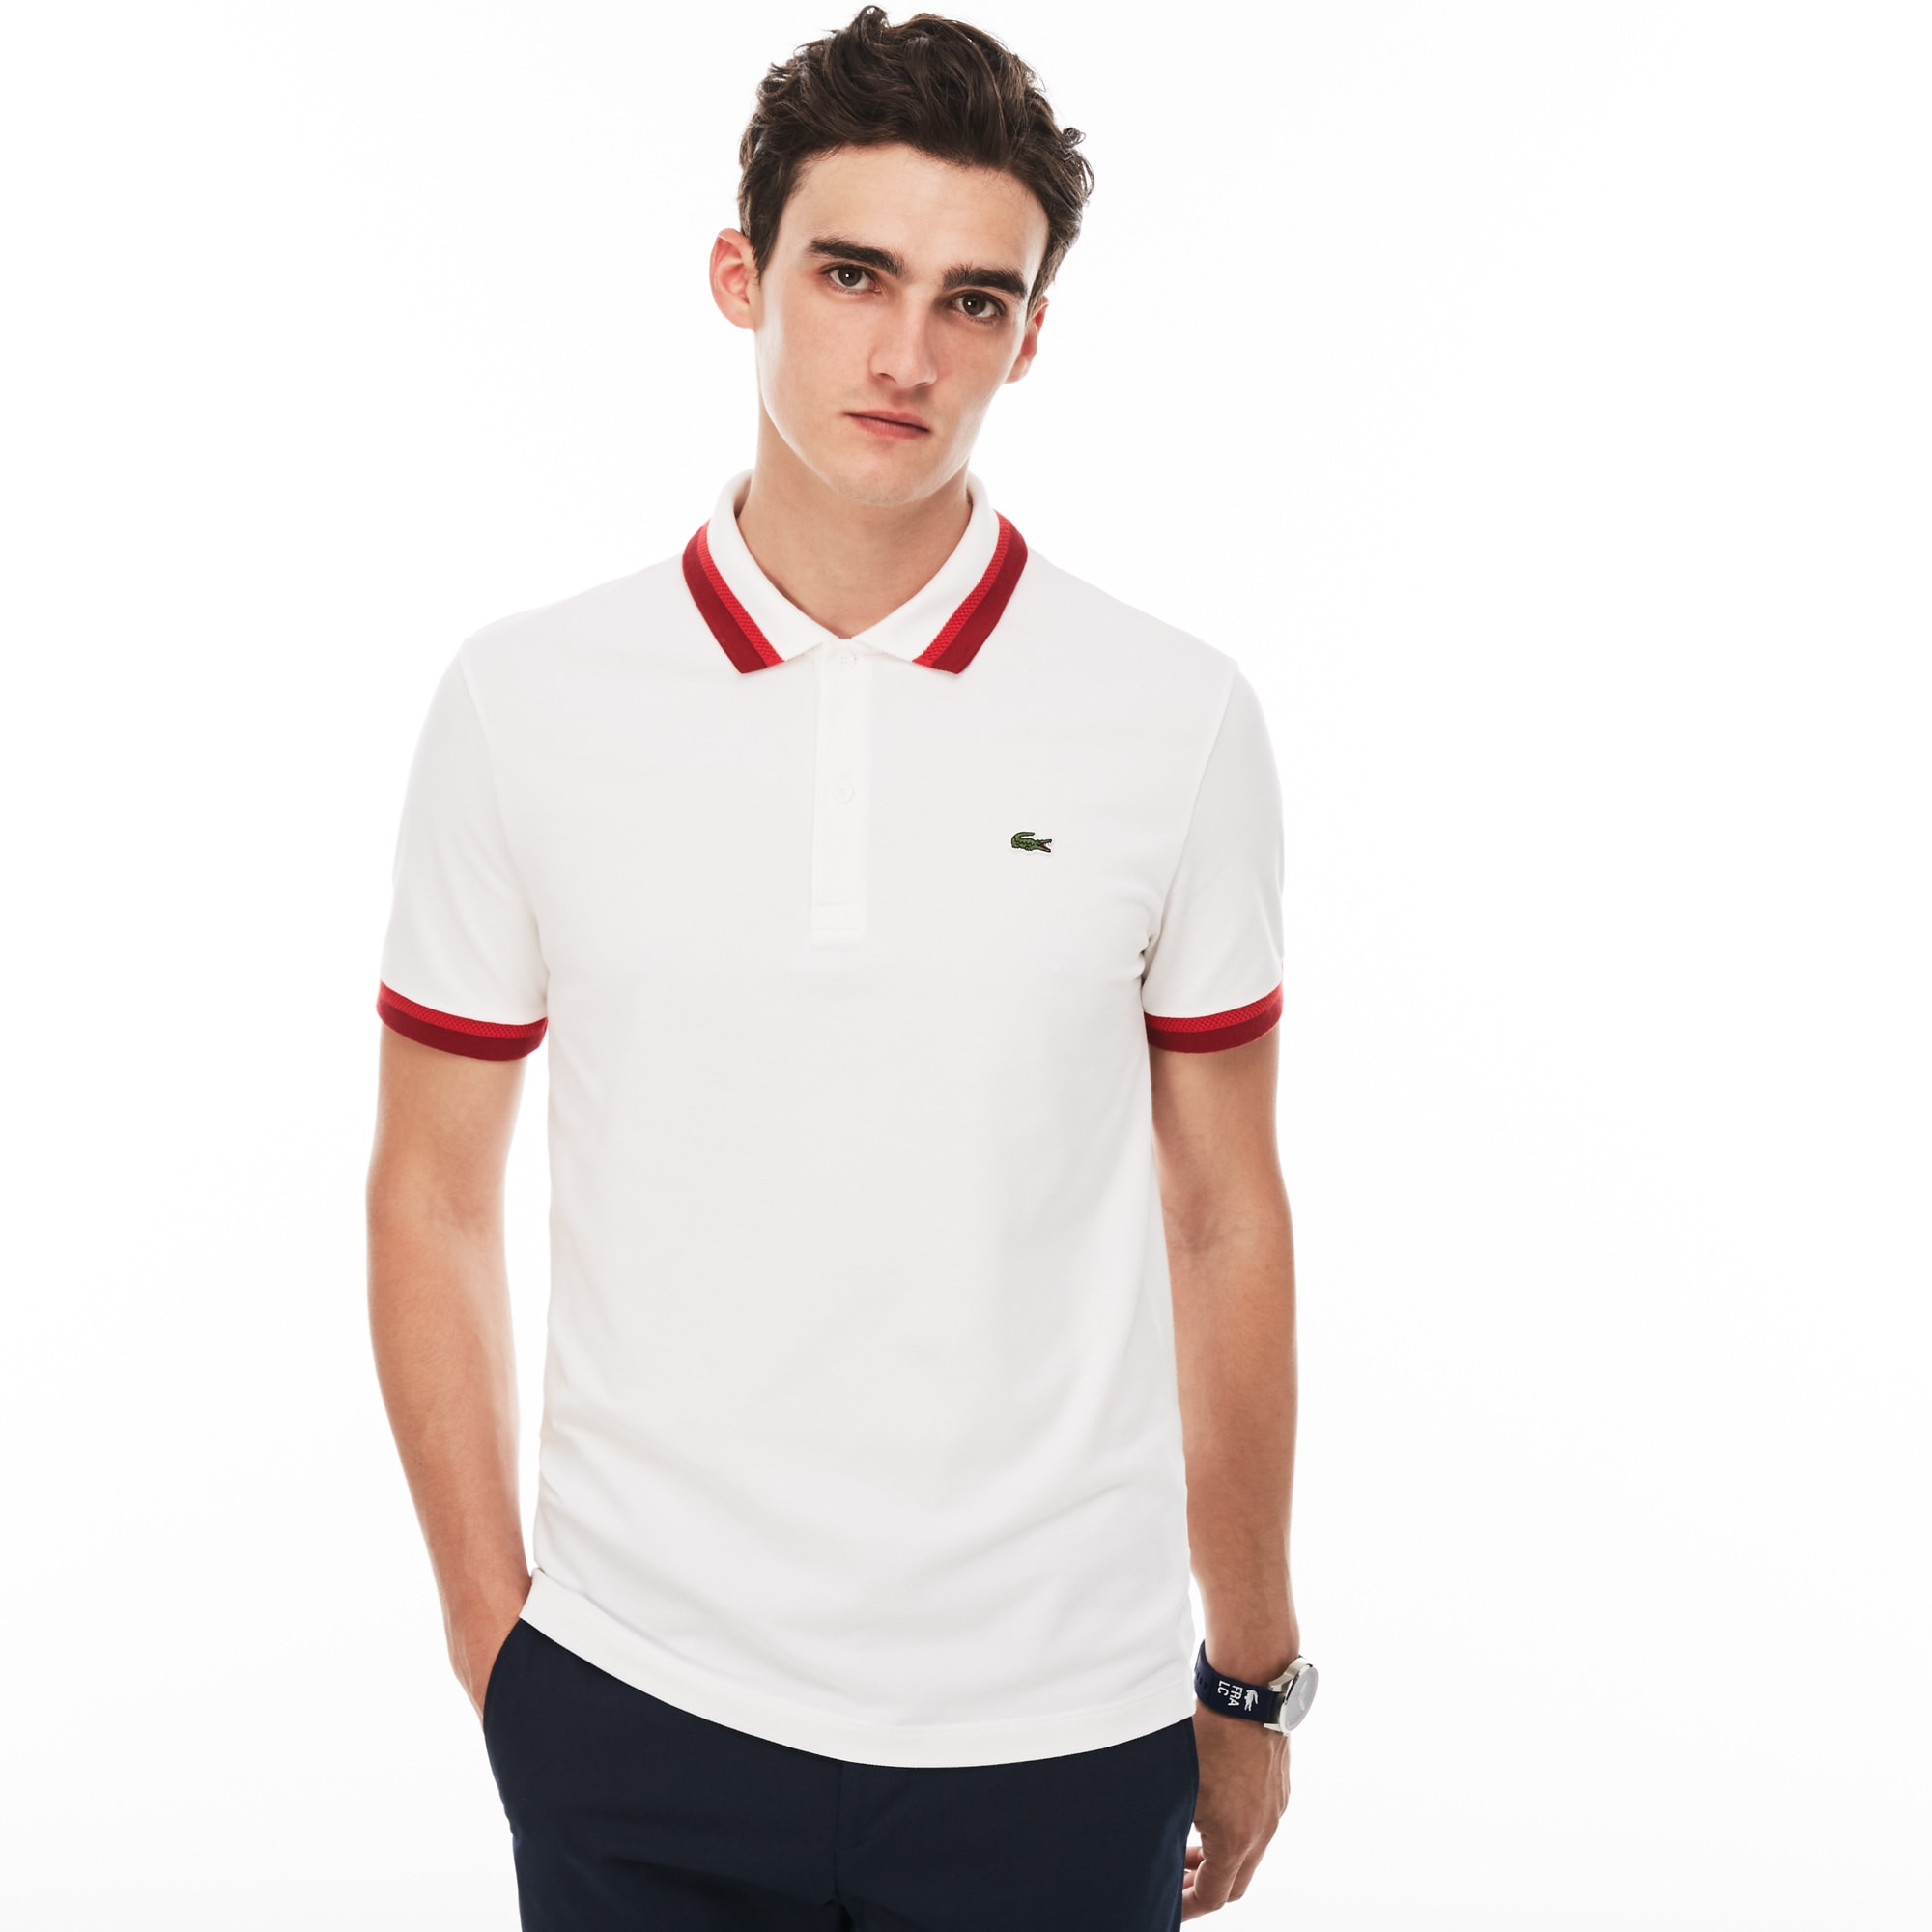 Men's Polo Shirts | Lacoste Polo Shirts for Men | LACOSTE